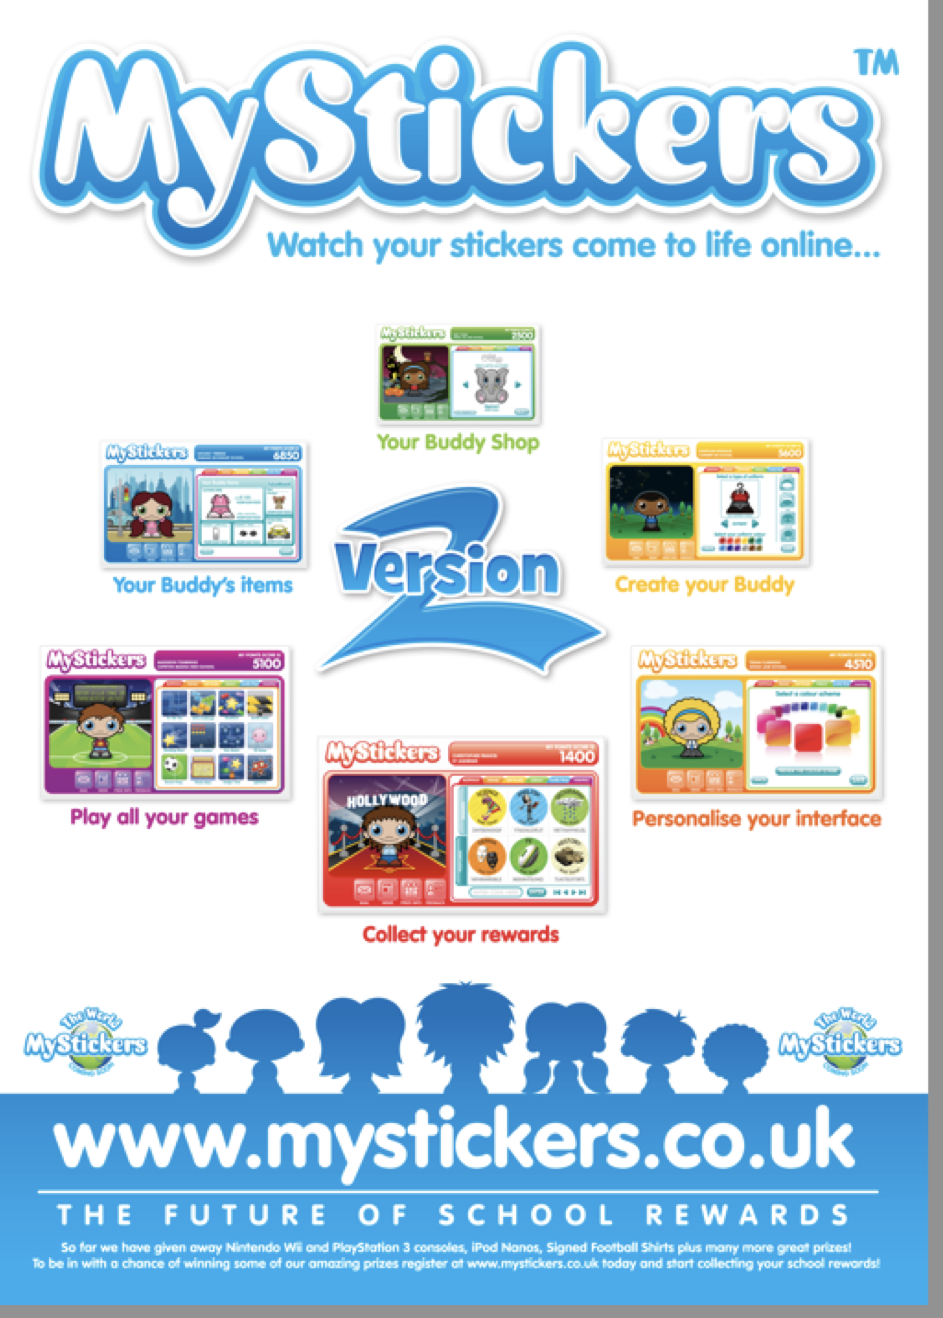 mystickers-early-poster-dan-king.png